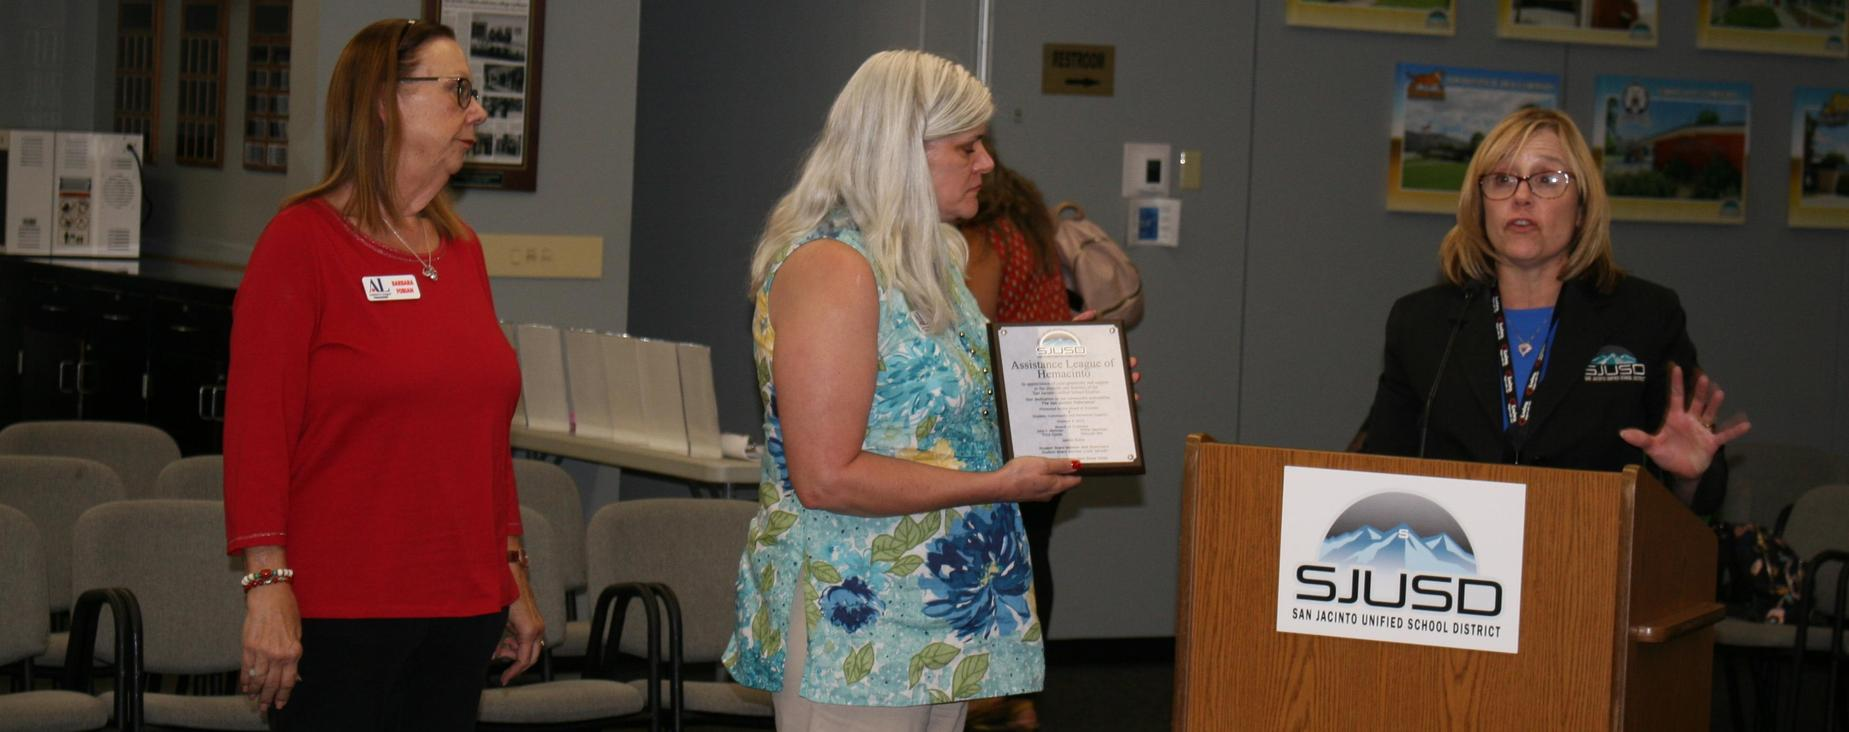 Deputy Supt Sherry Smith gave recognition to the Assistance League of Hemacinto for their support of students through Operation: School Bell at the October board meeting.